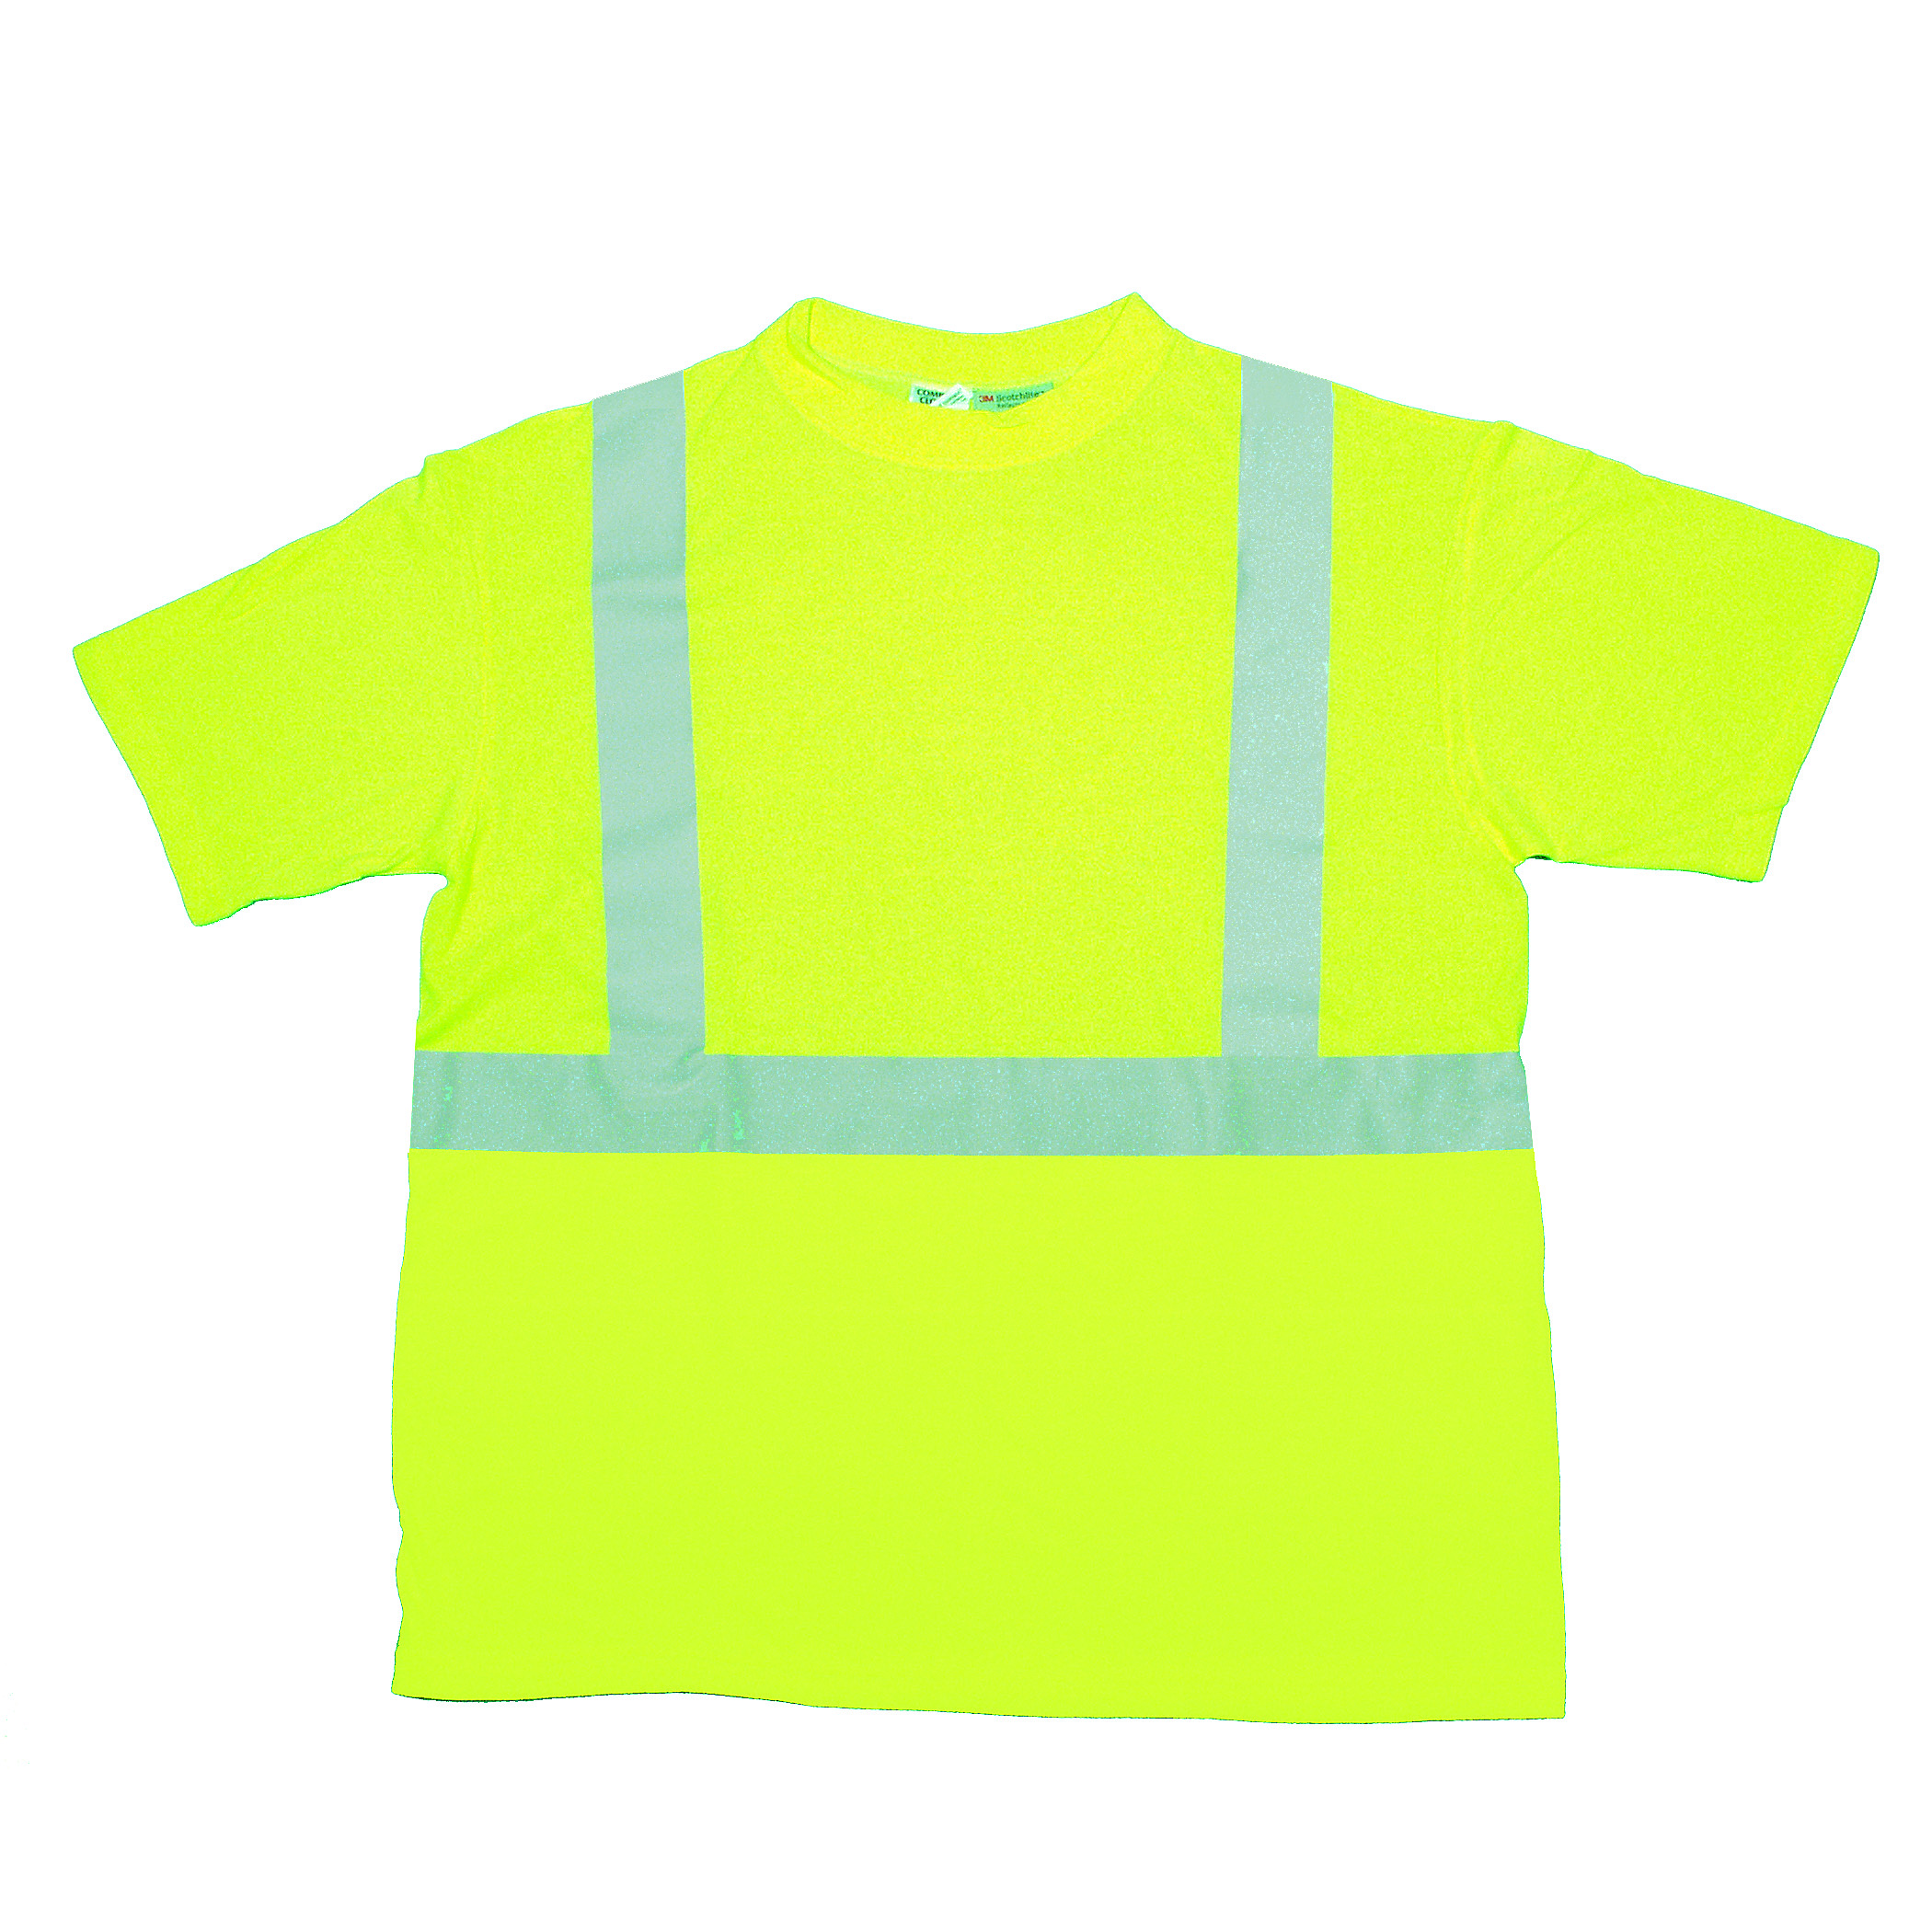 96001-0-106, ANSI Class 2 Durable Flame Retardant T-Shirt, Lime, 3XLarge, Mutual Industries